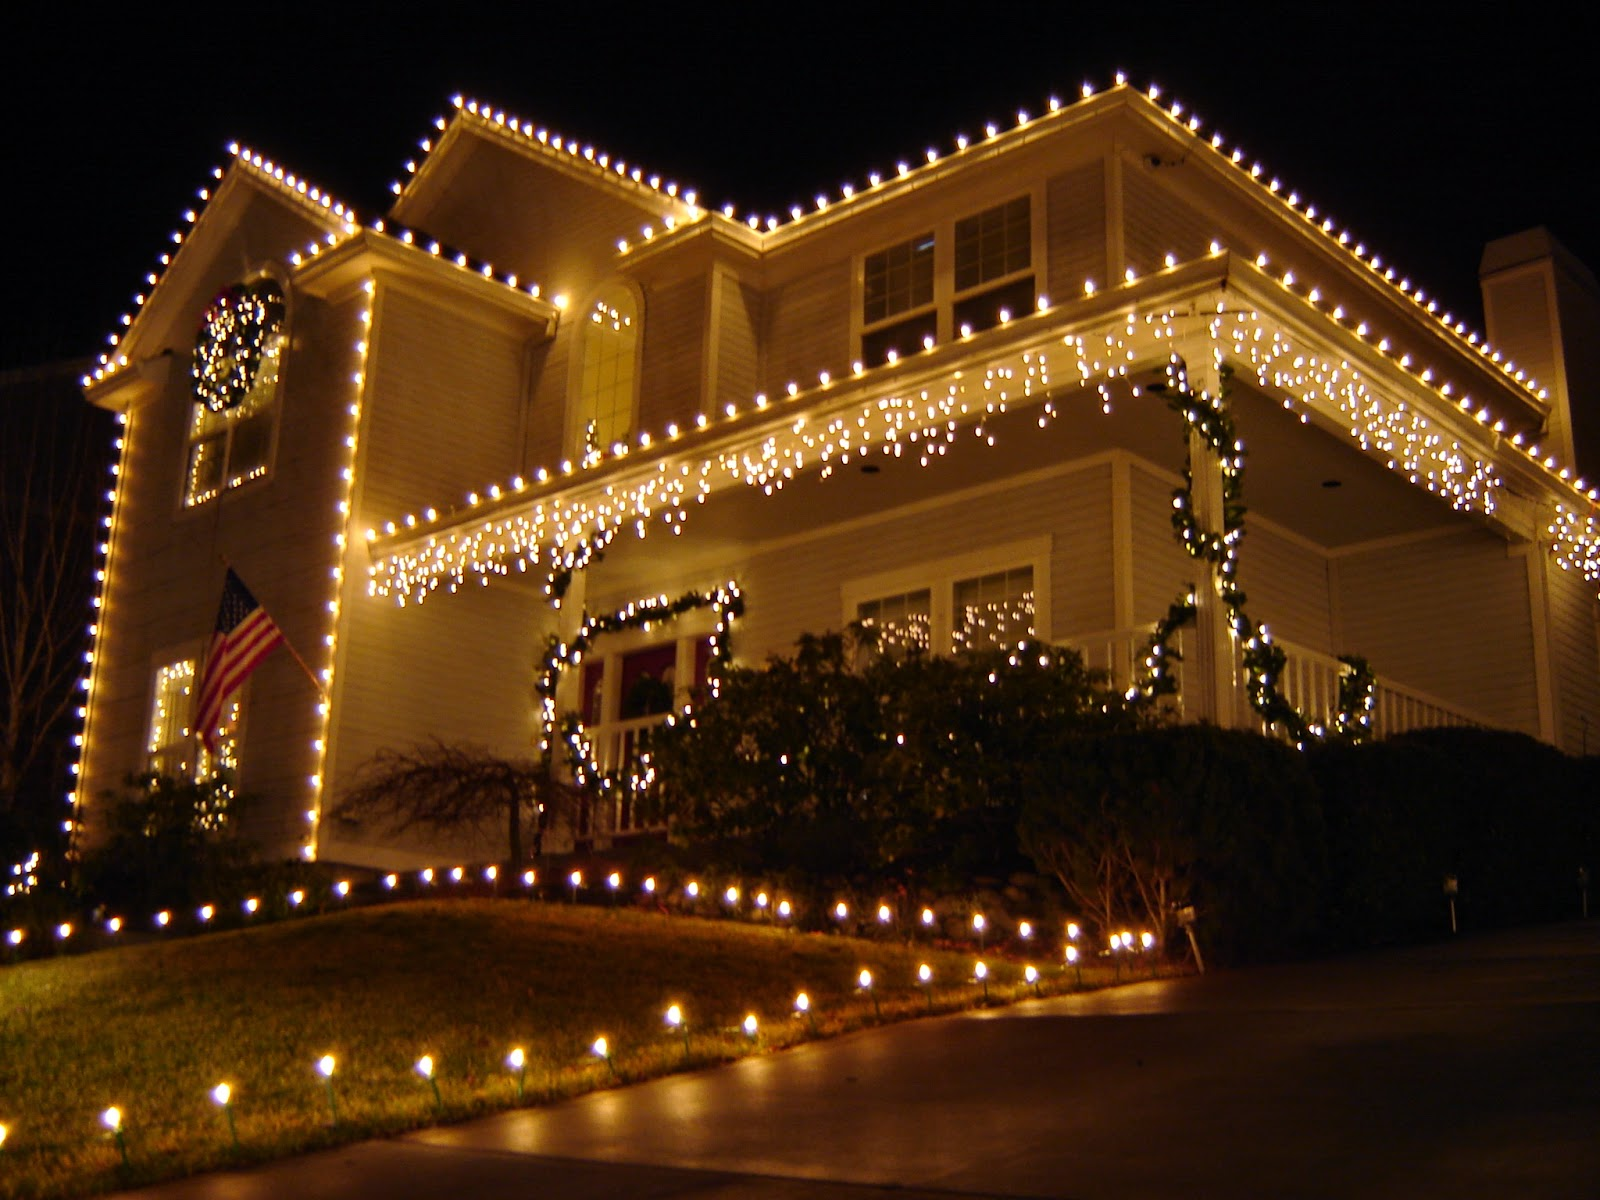 7 Tips For Installing Christmas Lights On Gutters